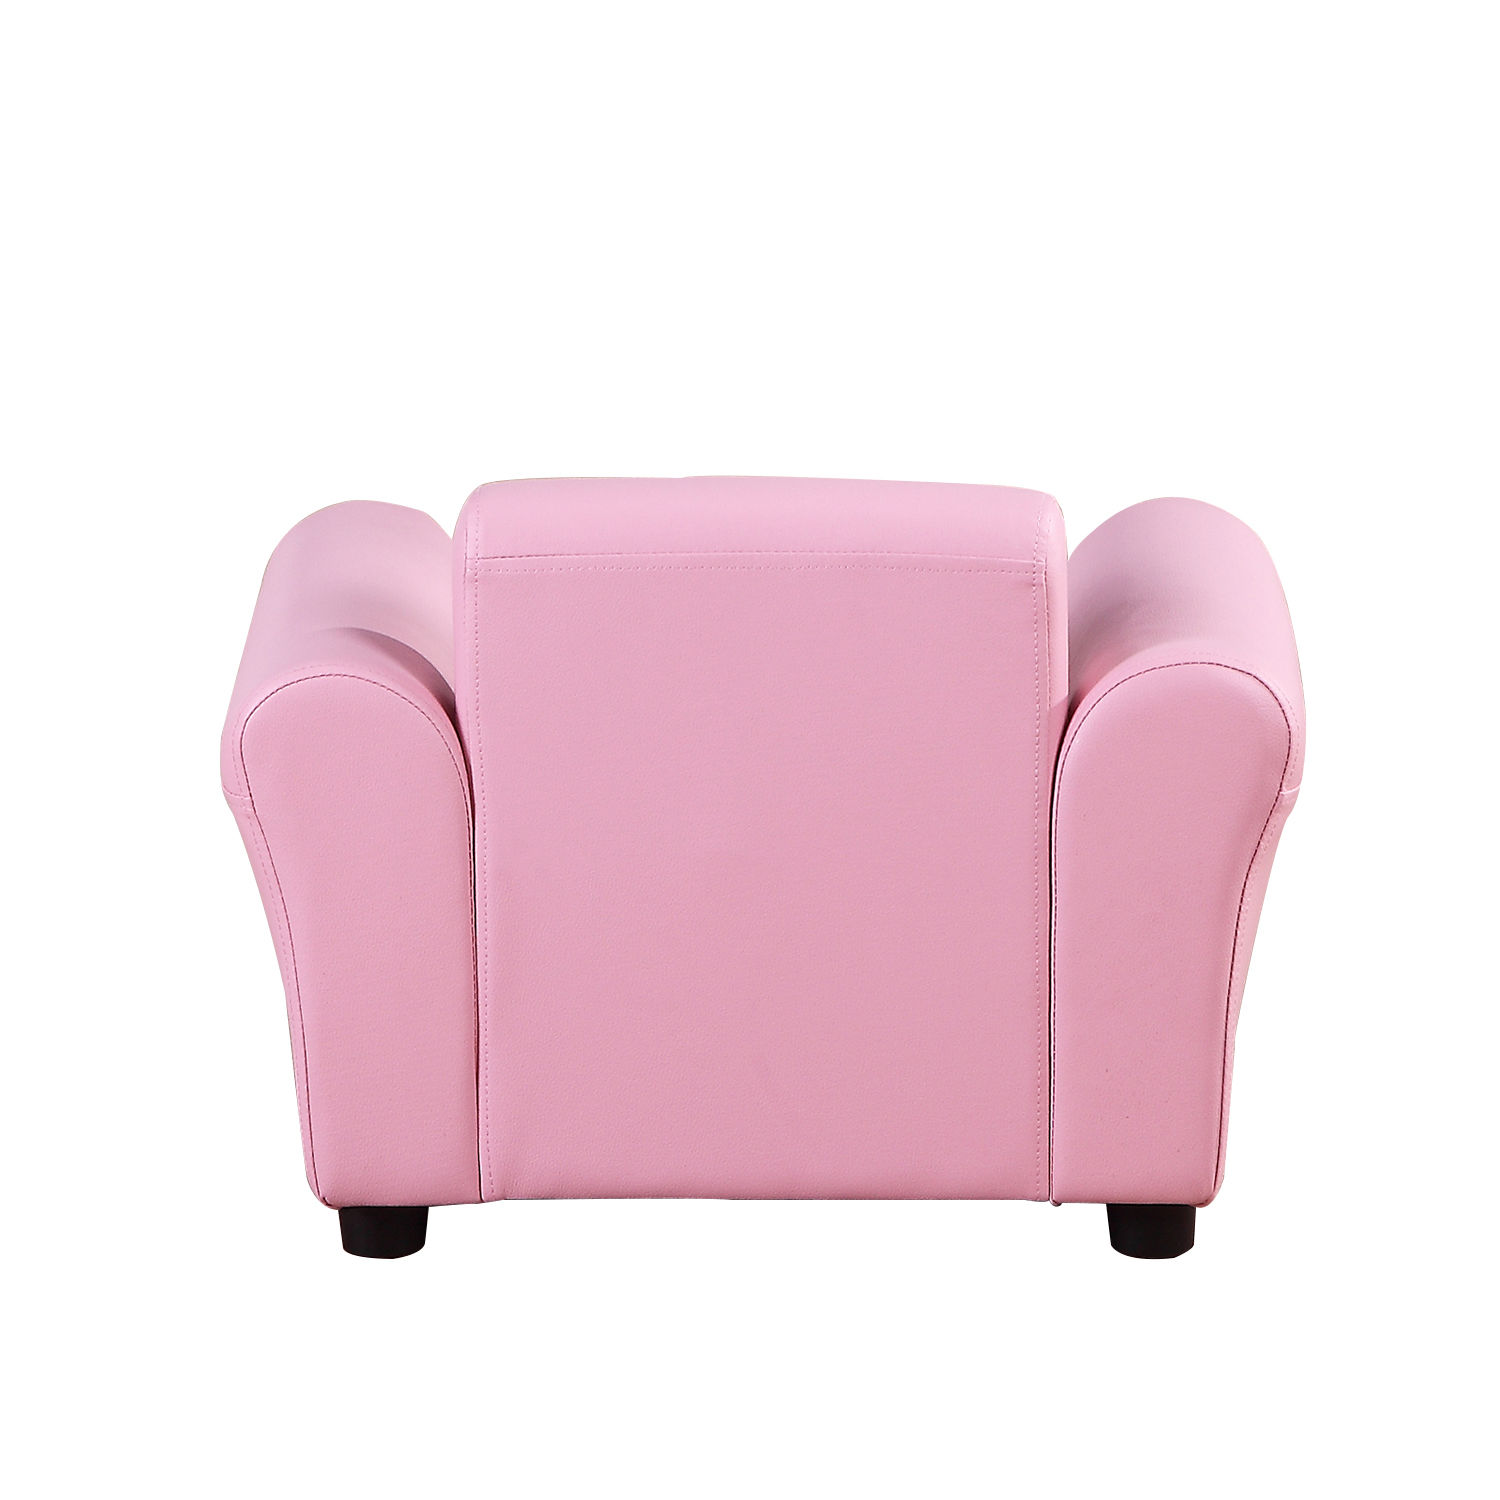 Kids-Sofa-Children-Chair-Seat-Armchair-W-Footstool-Playroom-Bedroom-Black-Pink thumbnail 15